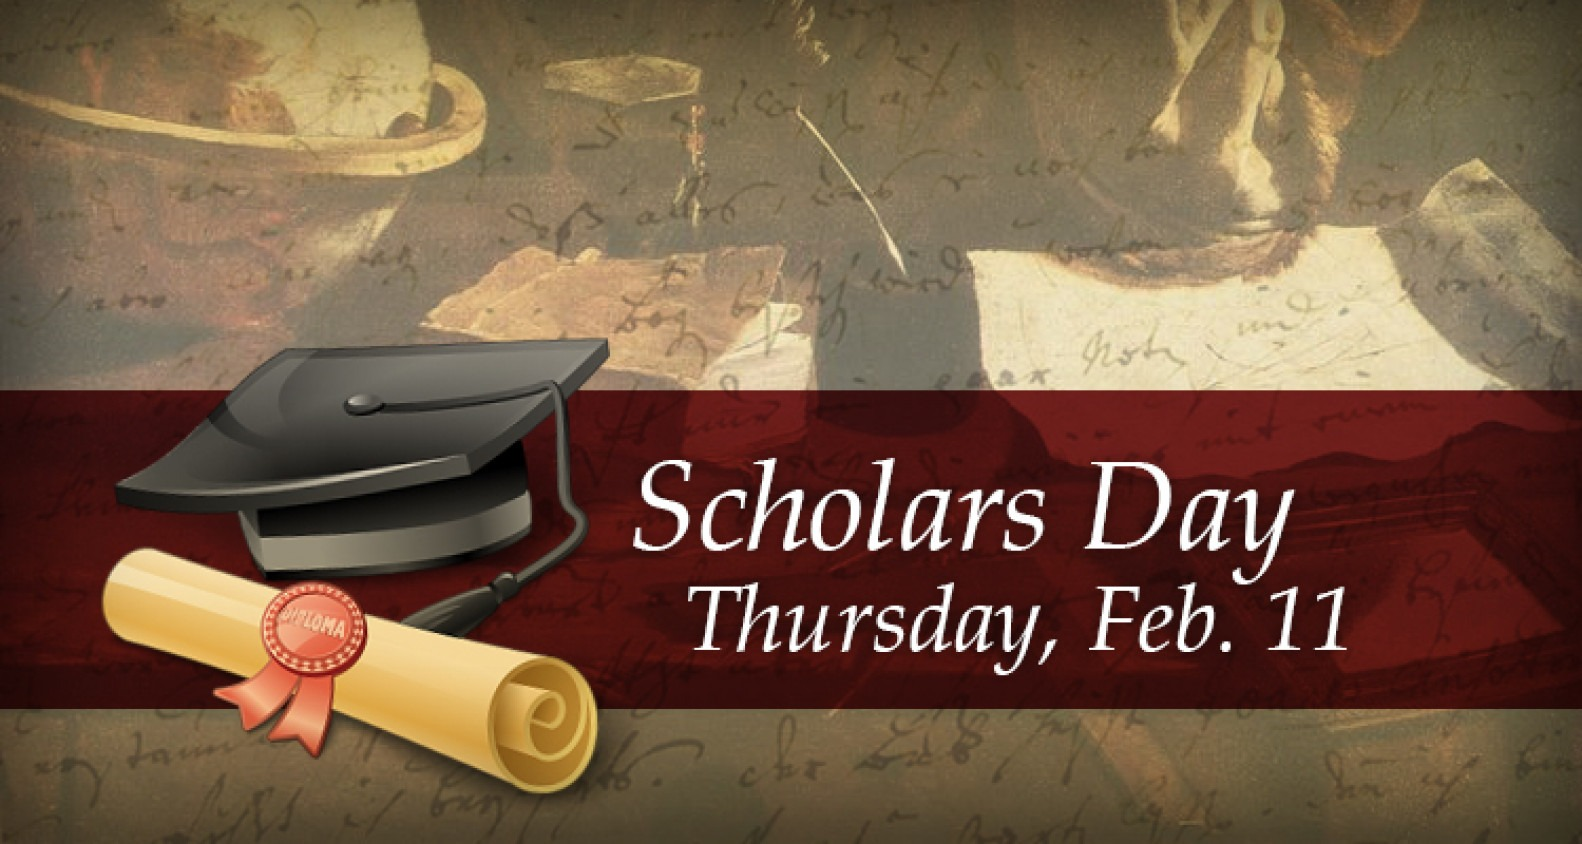 Scholars Day | Thursday, Feb. 11